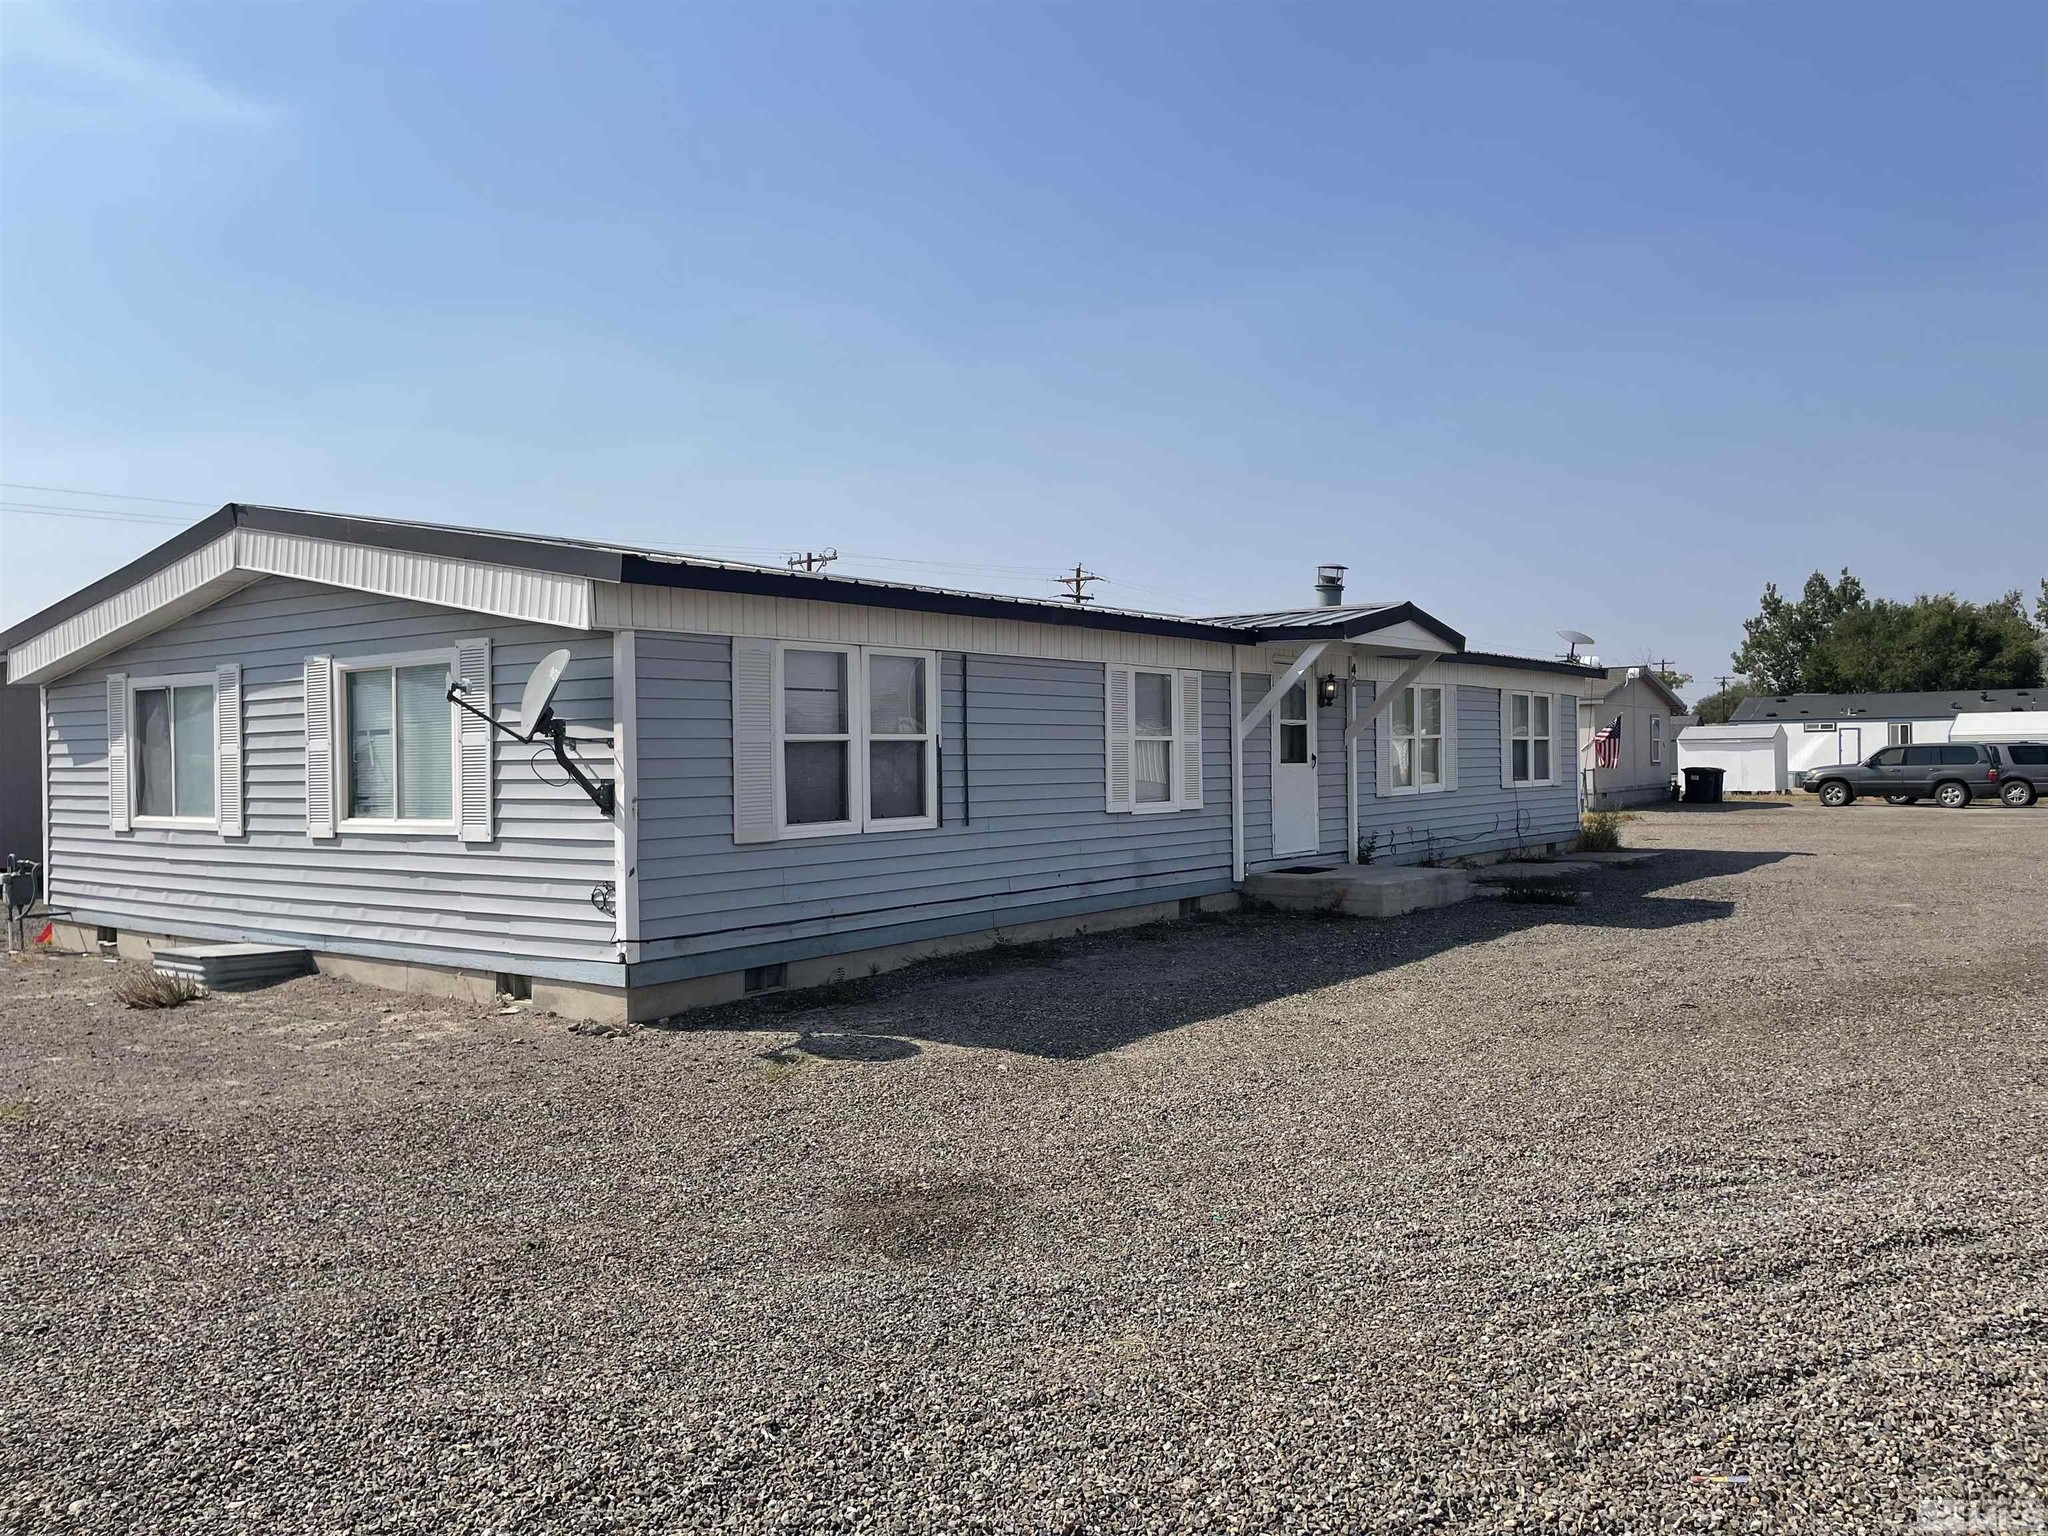 4-Bedroom Mobile Home In Battle Mountain